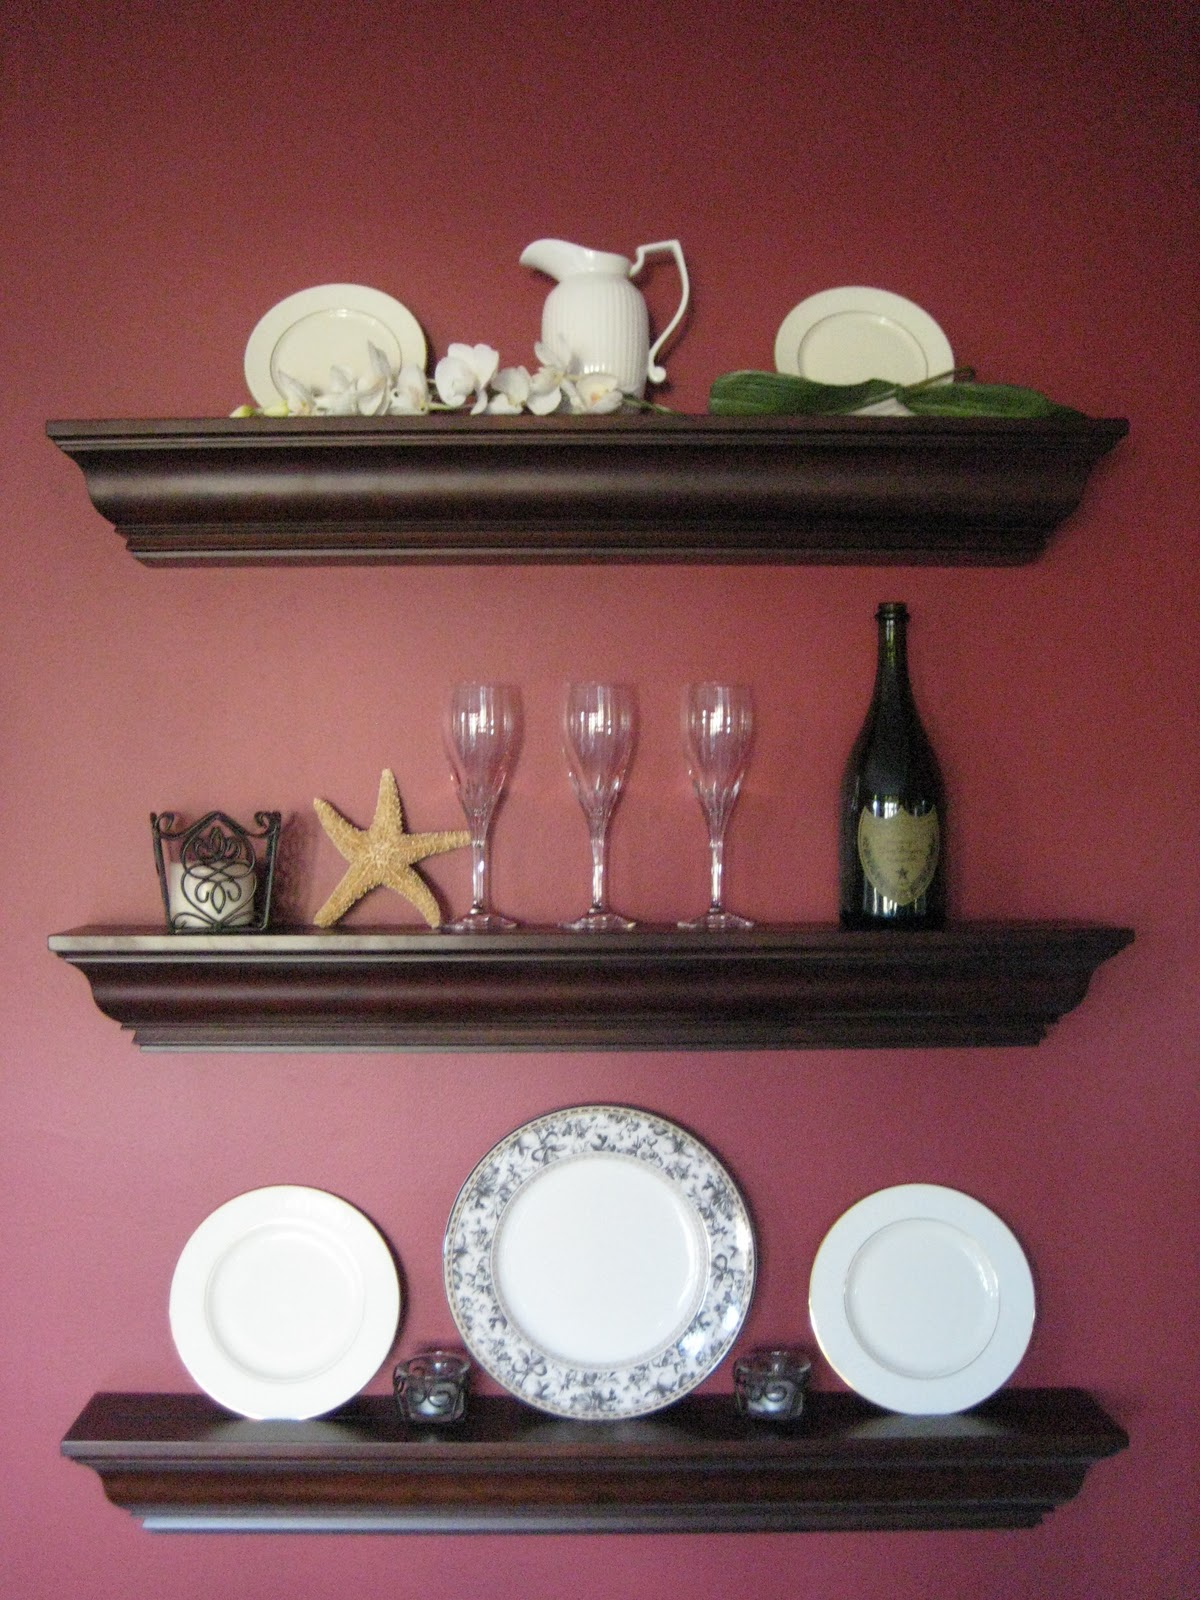 Wall Shelves in dining room